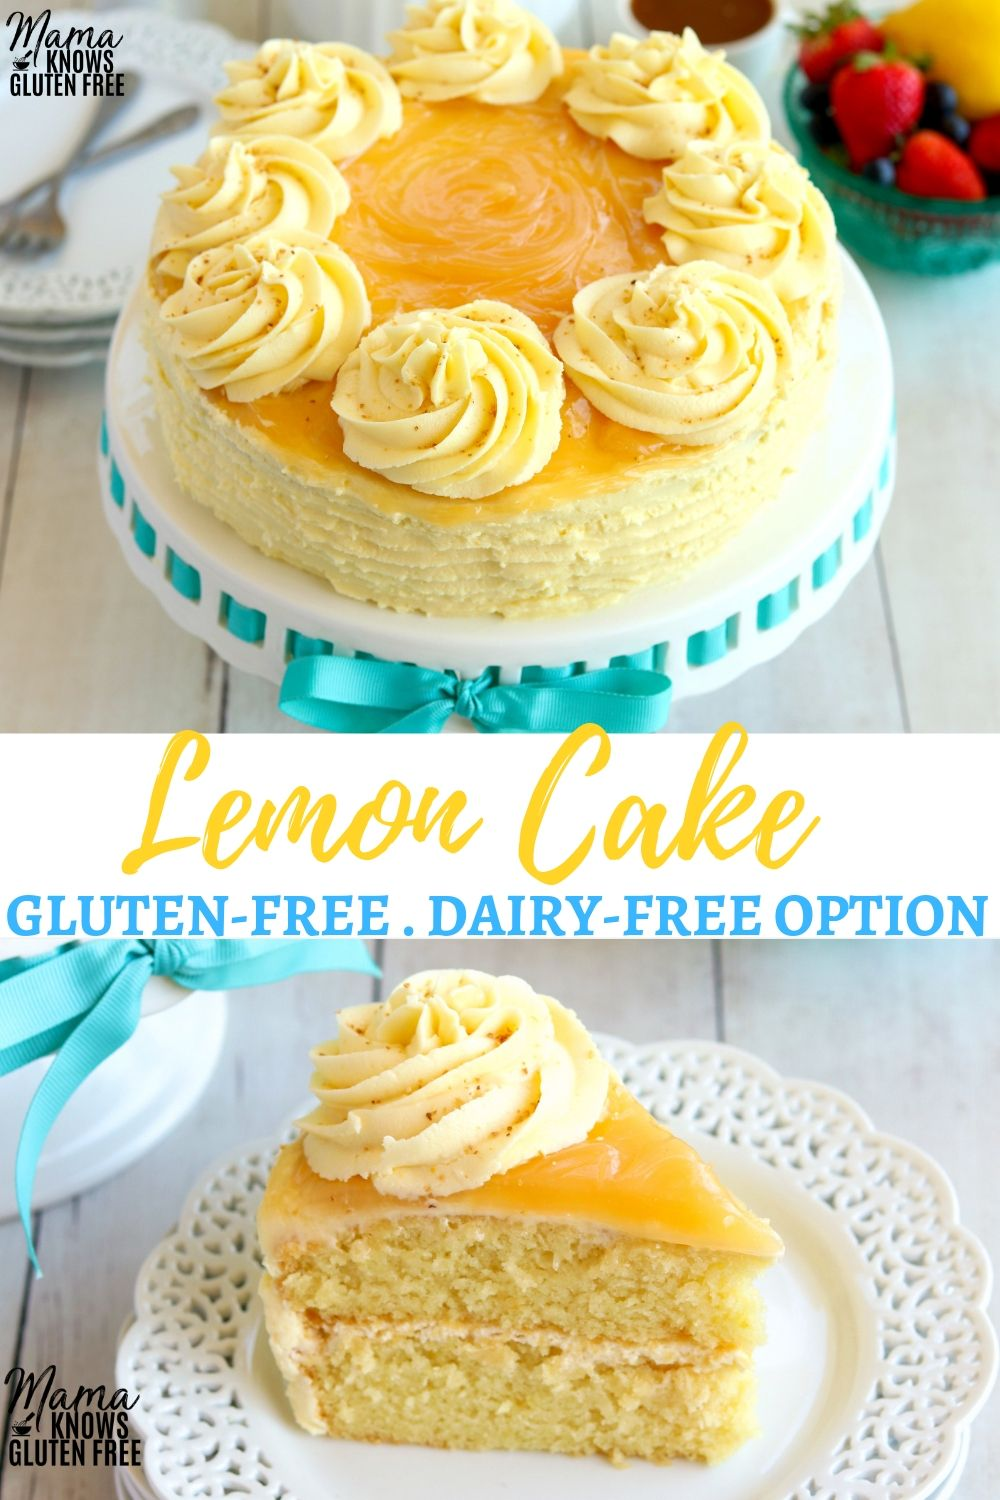 This Gluten Free Lemon Cake Is Moist Light And Fluffy Full Of Lemon Flavor And Topped With A Cr Gluten Free Lemon Cake Dairy Free Cake Recipe Dairy Free Cake